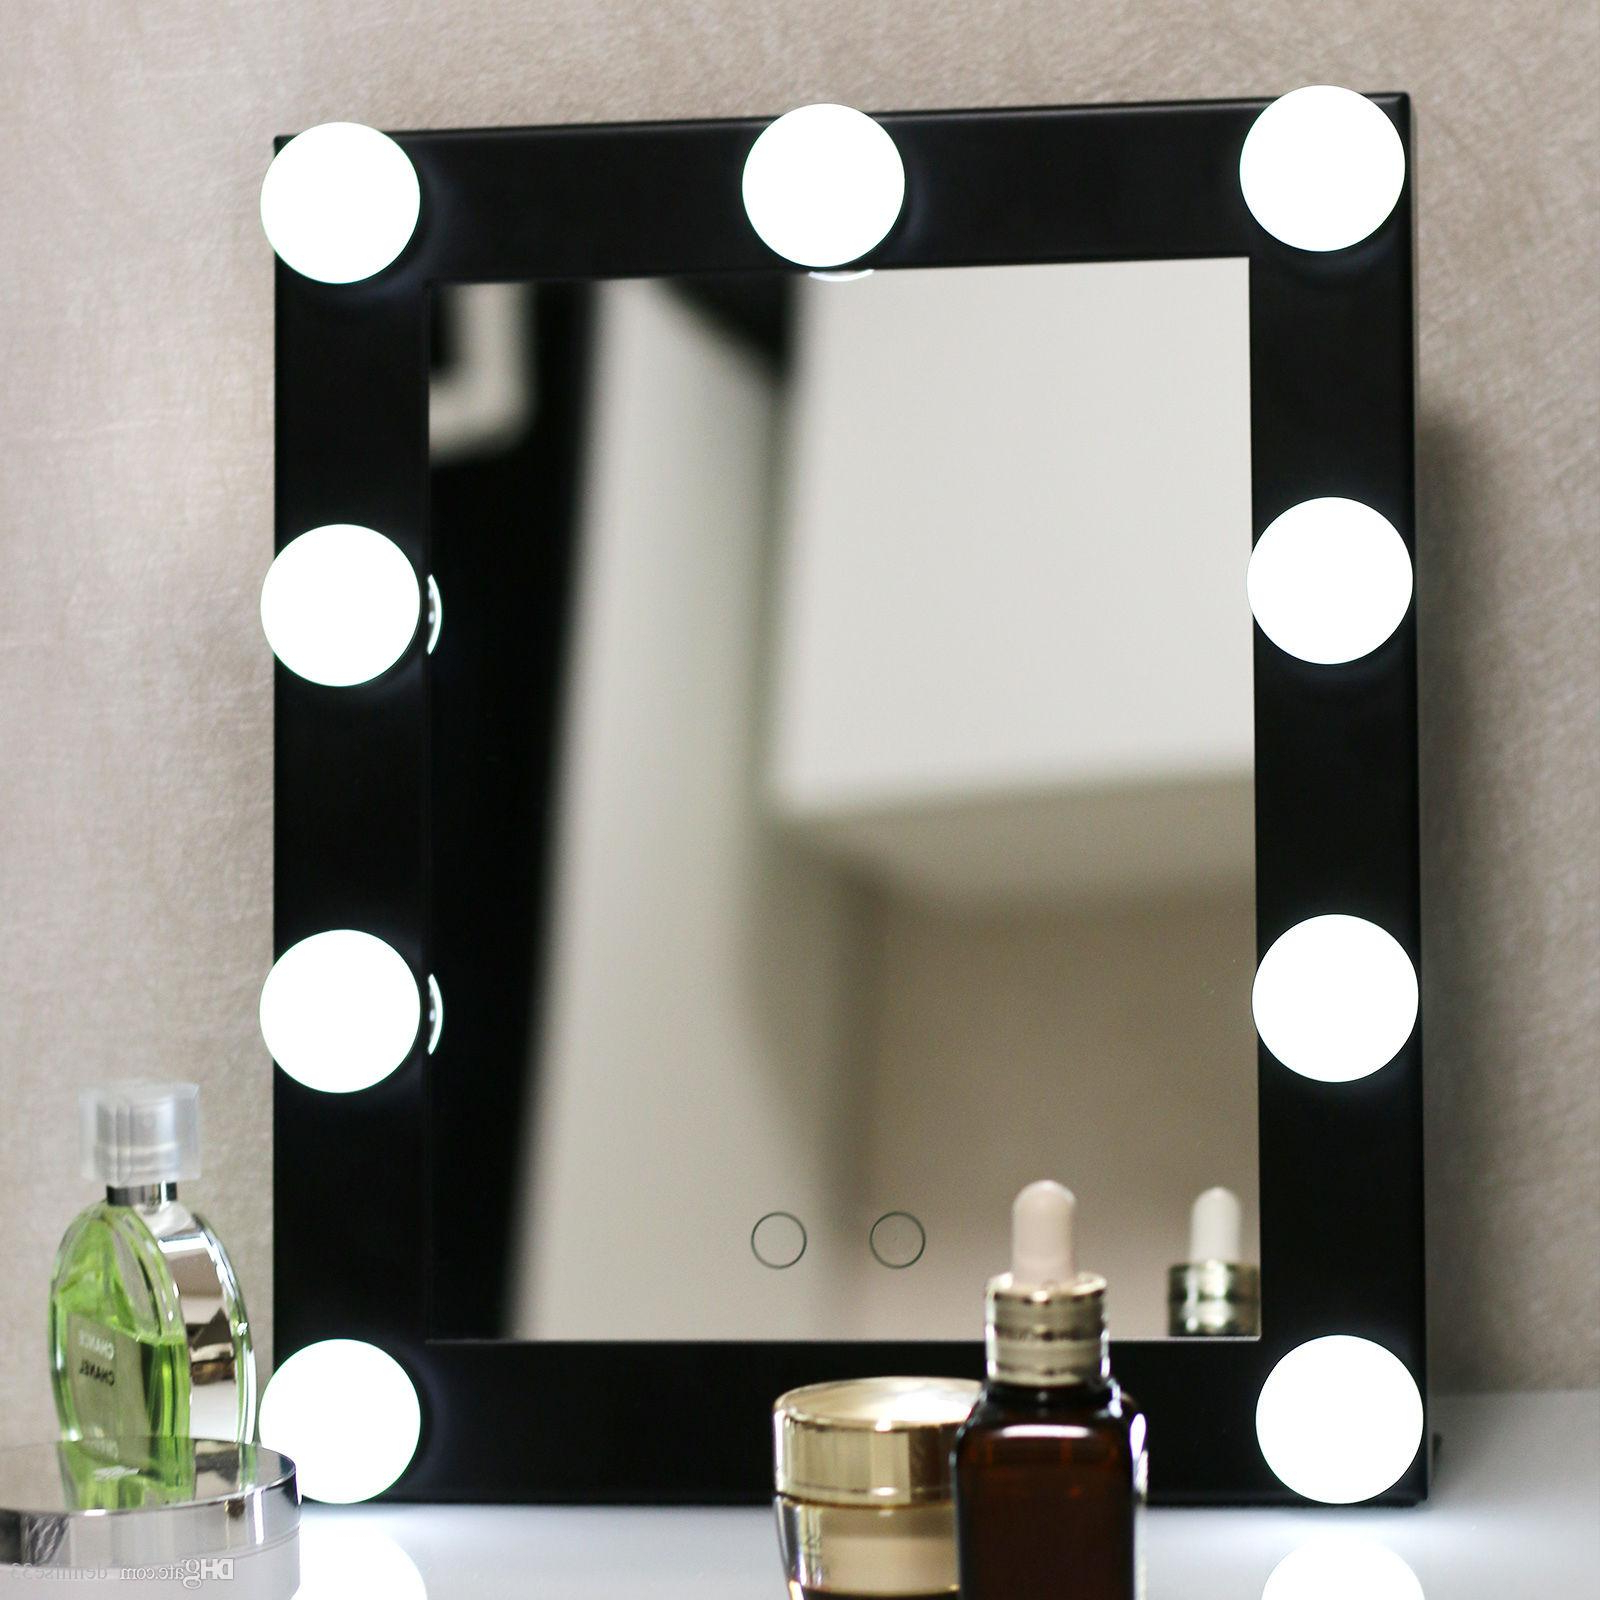 Free Shipping Hollywood Lighted Aluminum Table Desktop Wall Mounted Cosmetic Makeup Artist Salon Vanity Girl Mirror With Lights Bulbs Around With Regard To Fashionable Make Up Wall Mirrors (View 17 of 20)